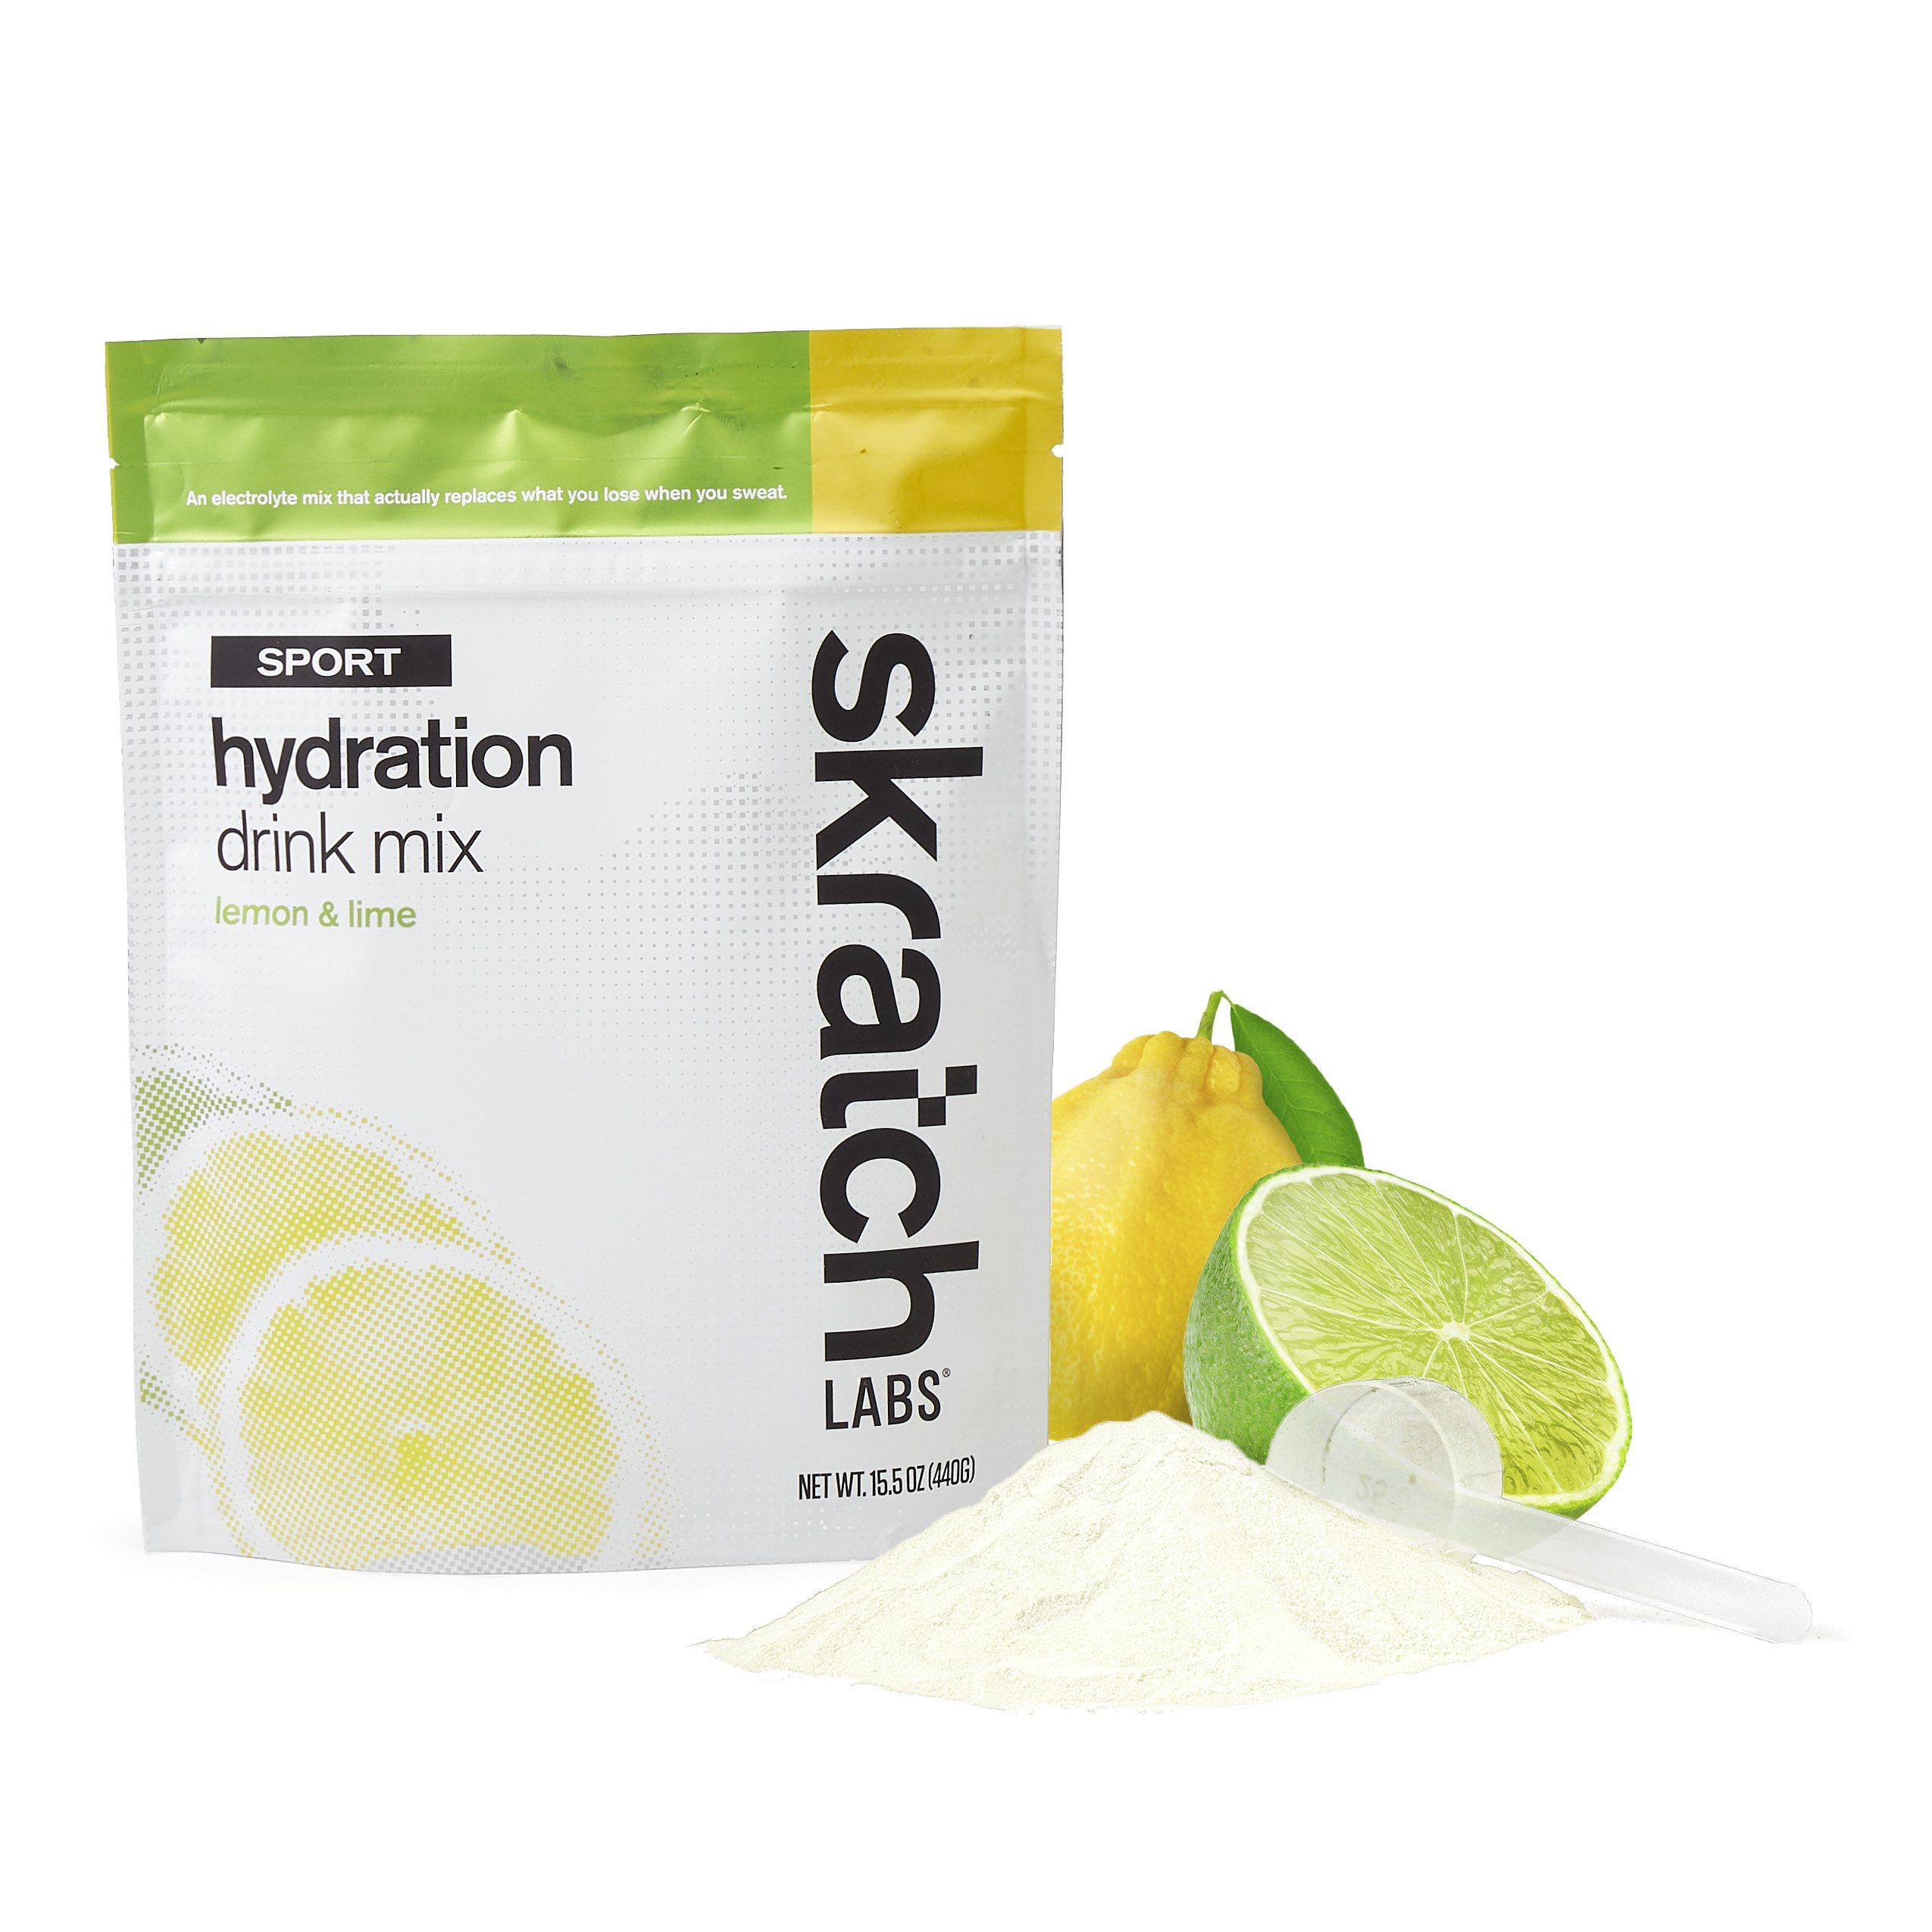 SKRATCH LABS Sport Hydration Drink Mix, Lemon and Lime, 20 serving resealable bag (non-GMO, dairy free, gluten free, kosher, vegan)